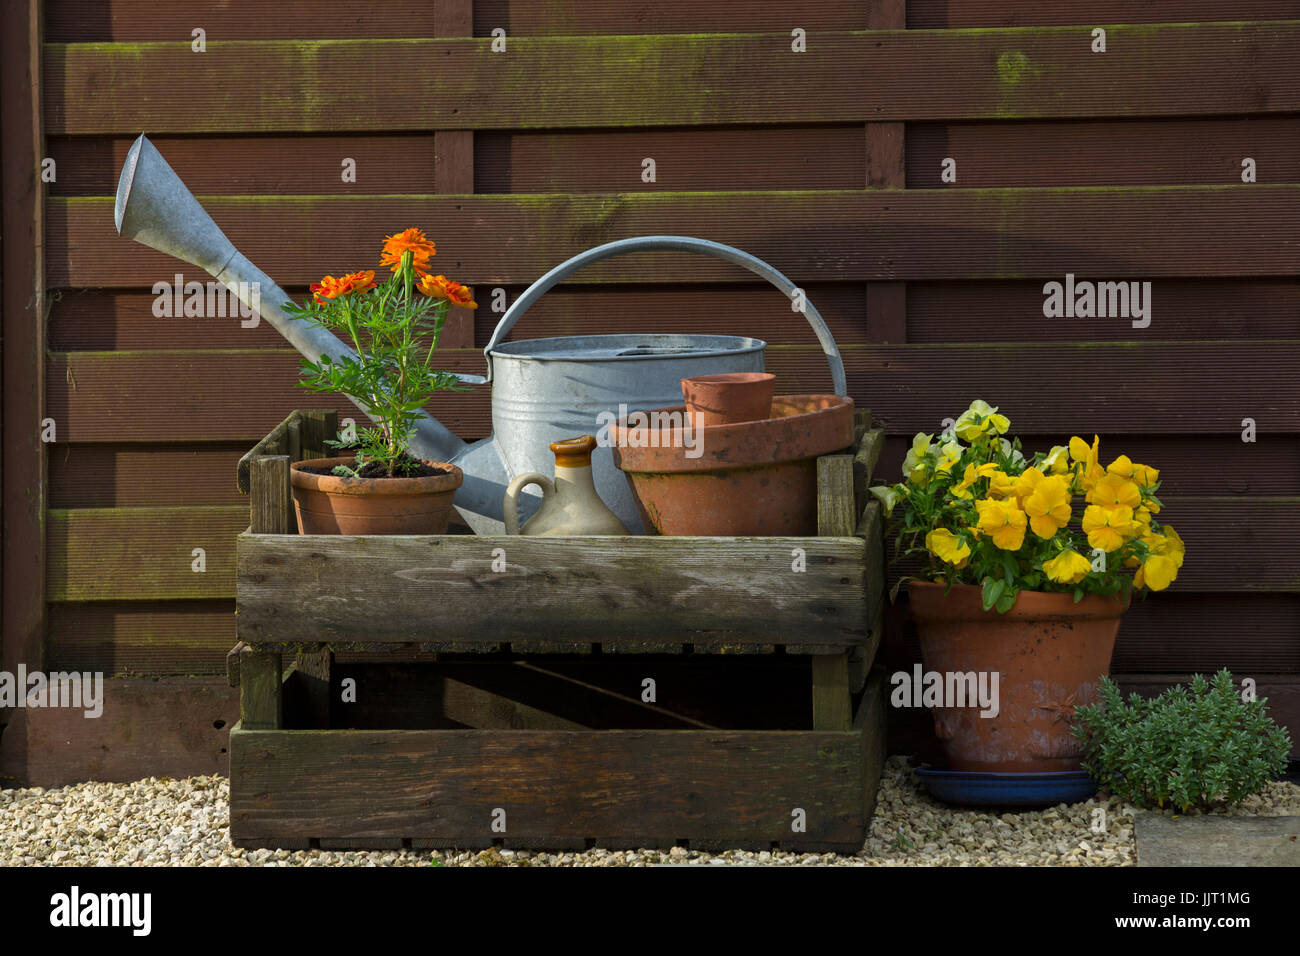 Flowers and pots in a cottage garden. - Stock Image